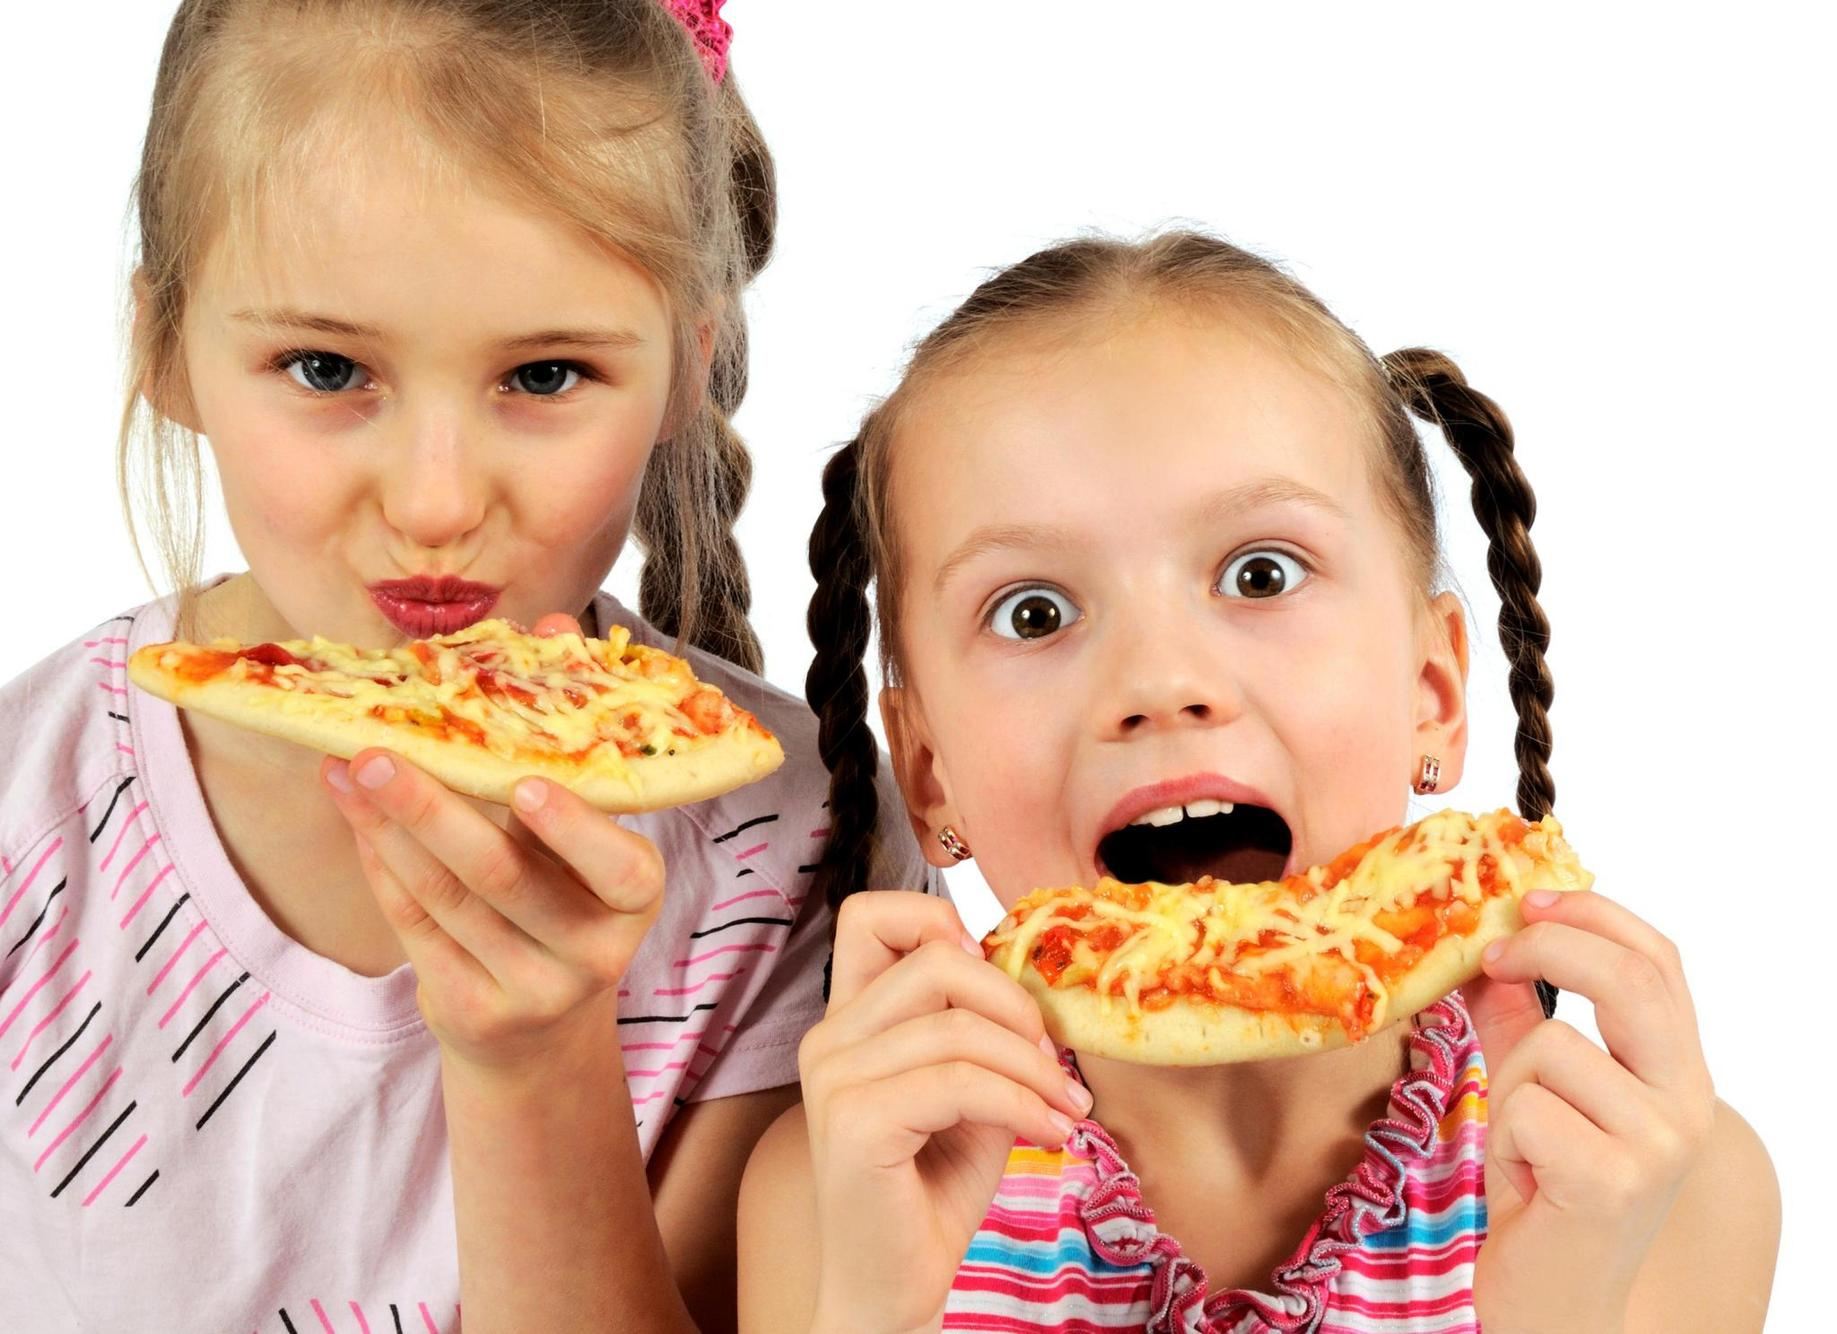 kid eating pizza - 765×555